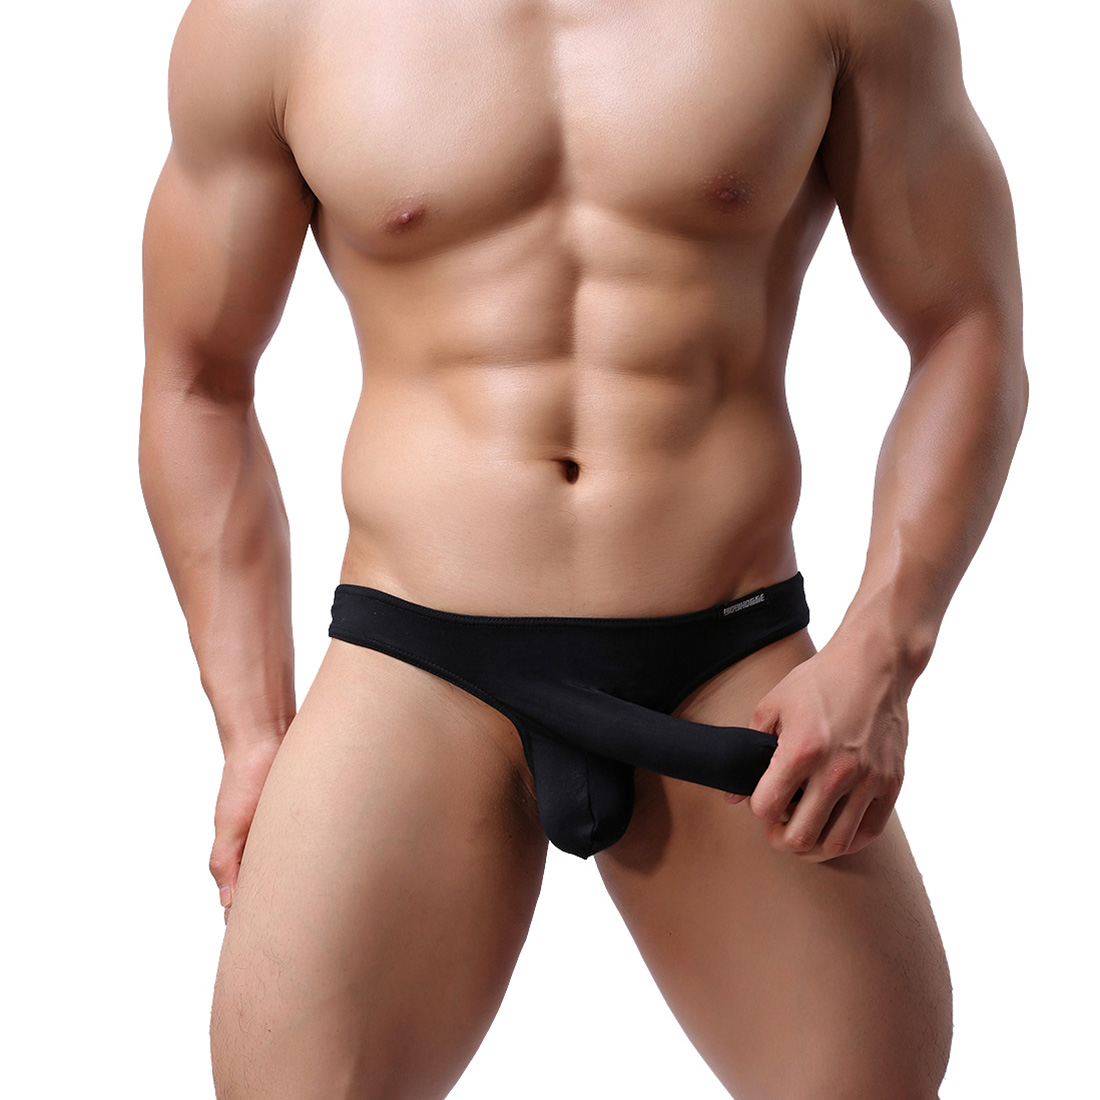 Men's Sexy Lingerie Underwear Modal Triangle Pants Shorts ...